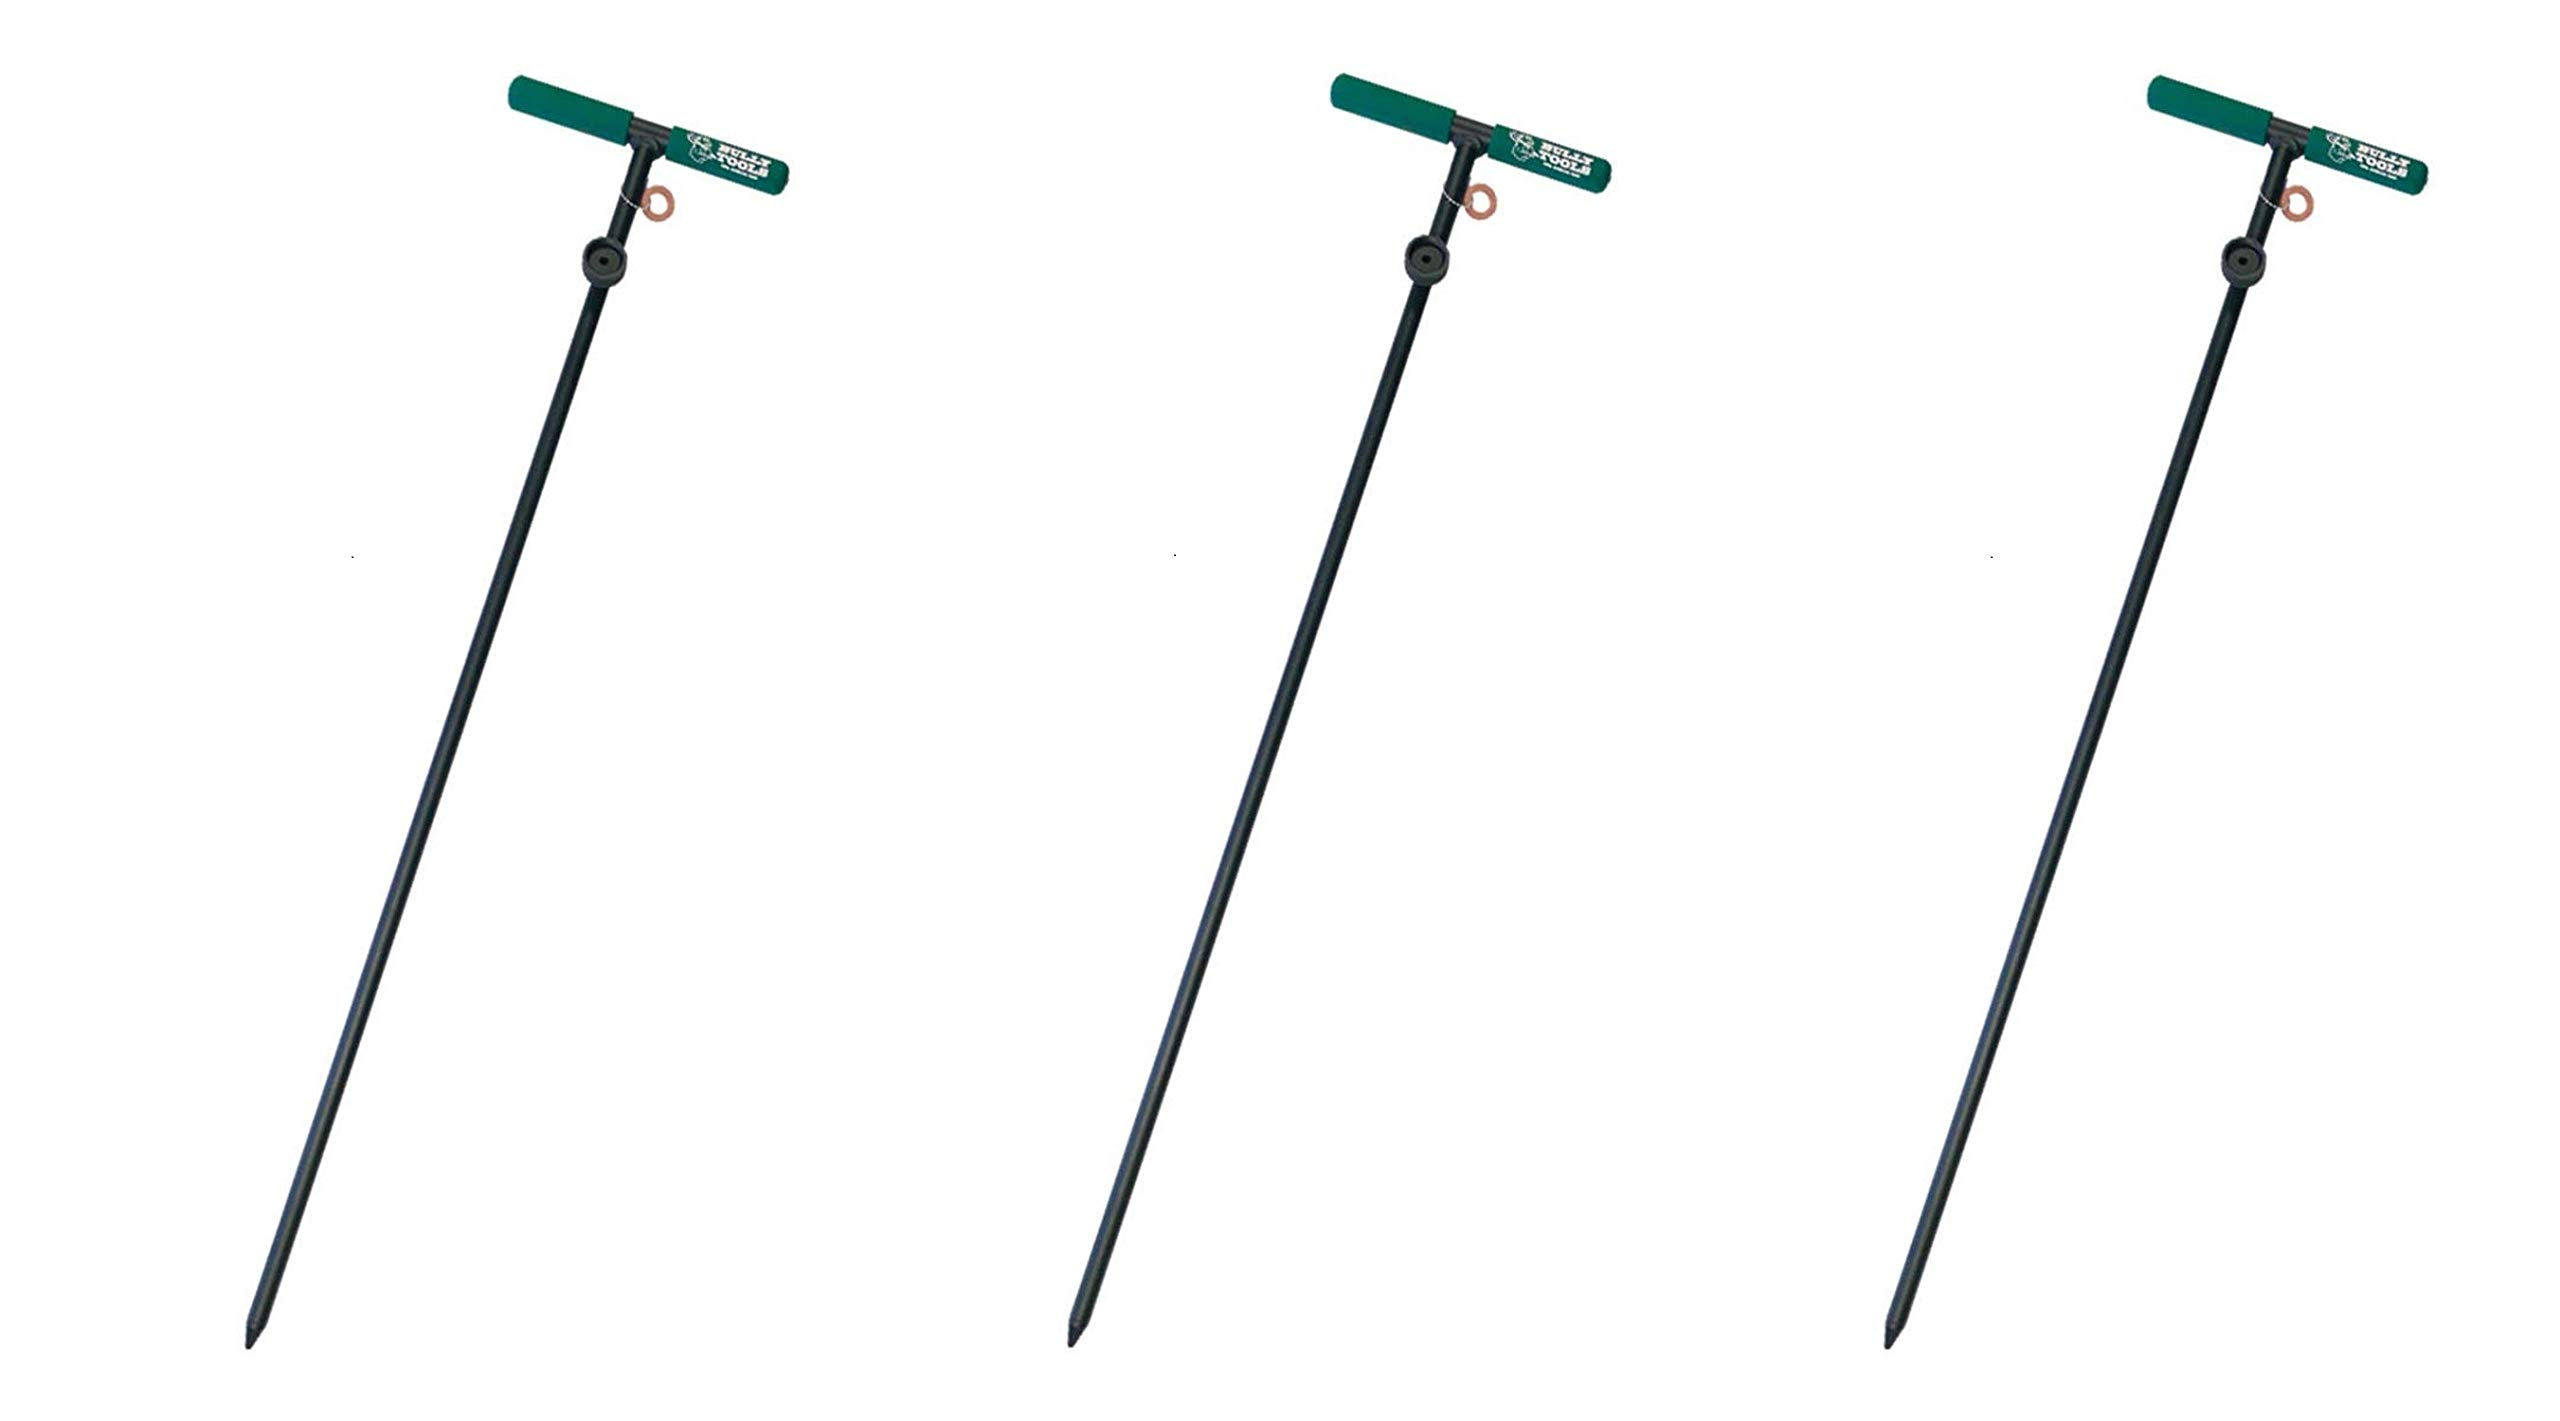 Bully Tools 92300 Root Soaker Irrigation Tool with Steel T-Style Handle (Pack of 3)